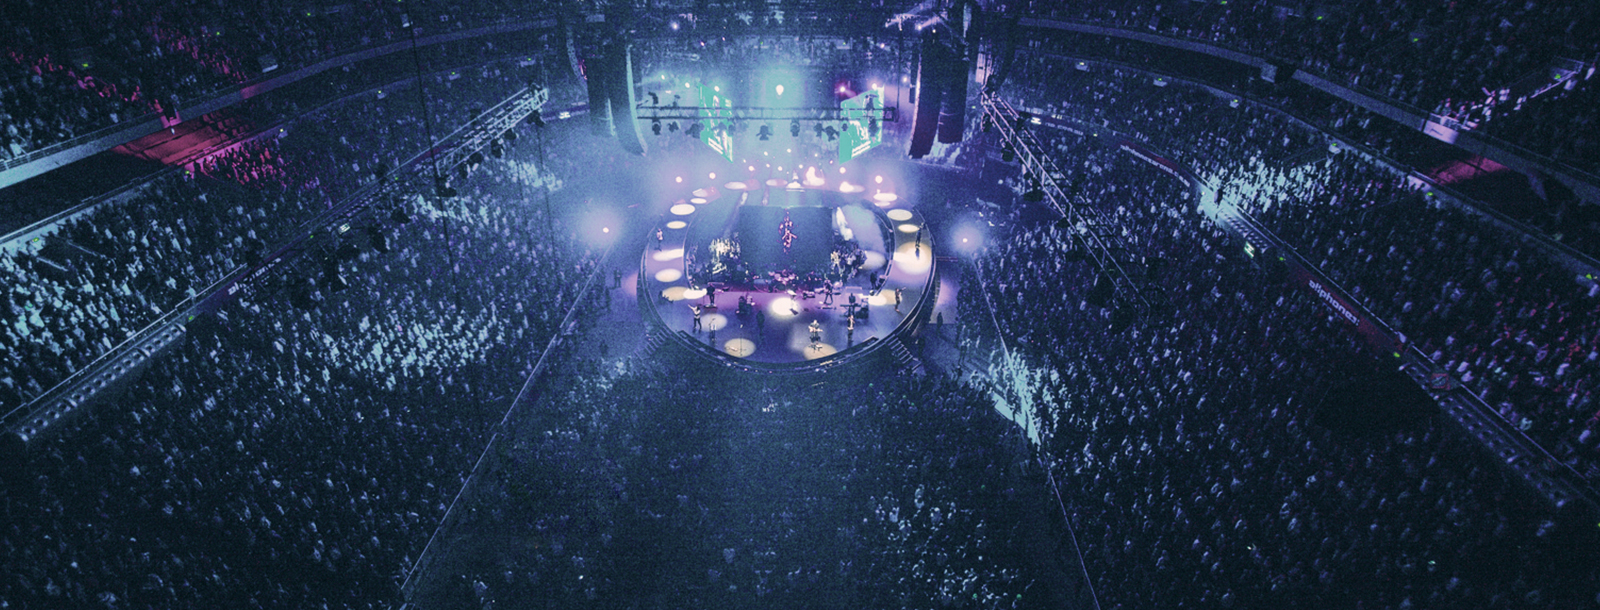 Hillsong Conference,